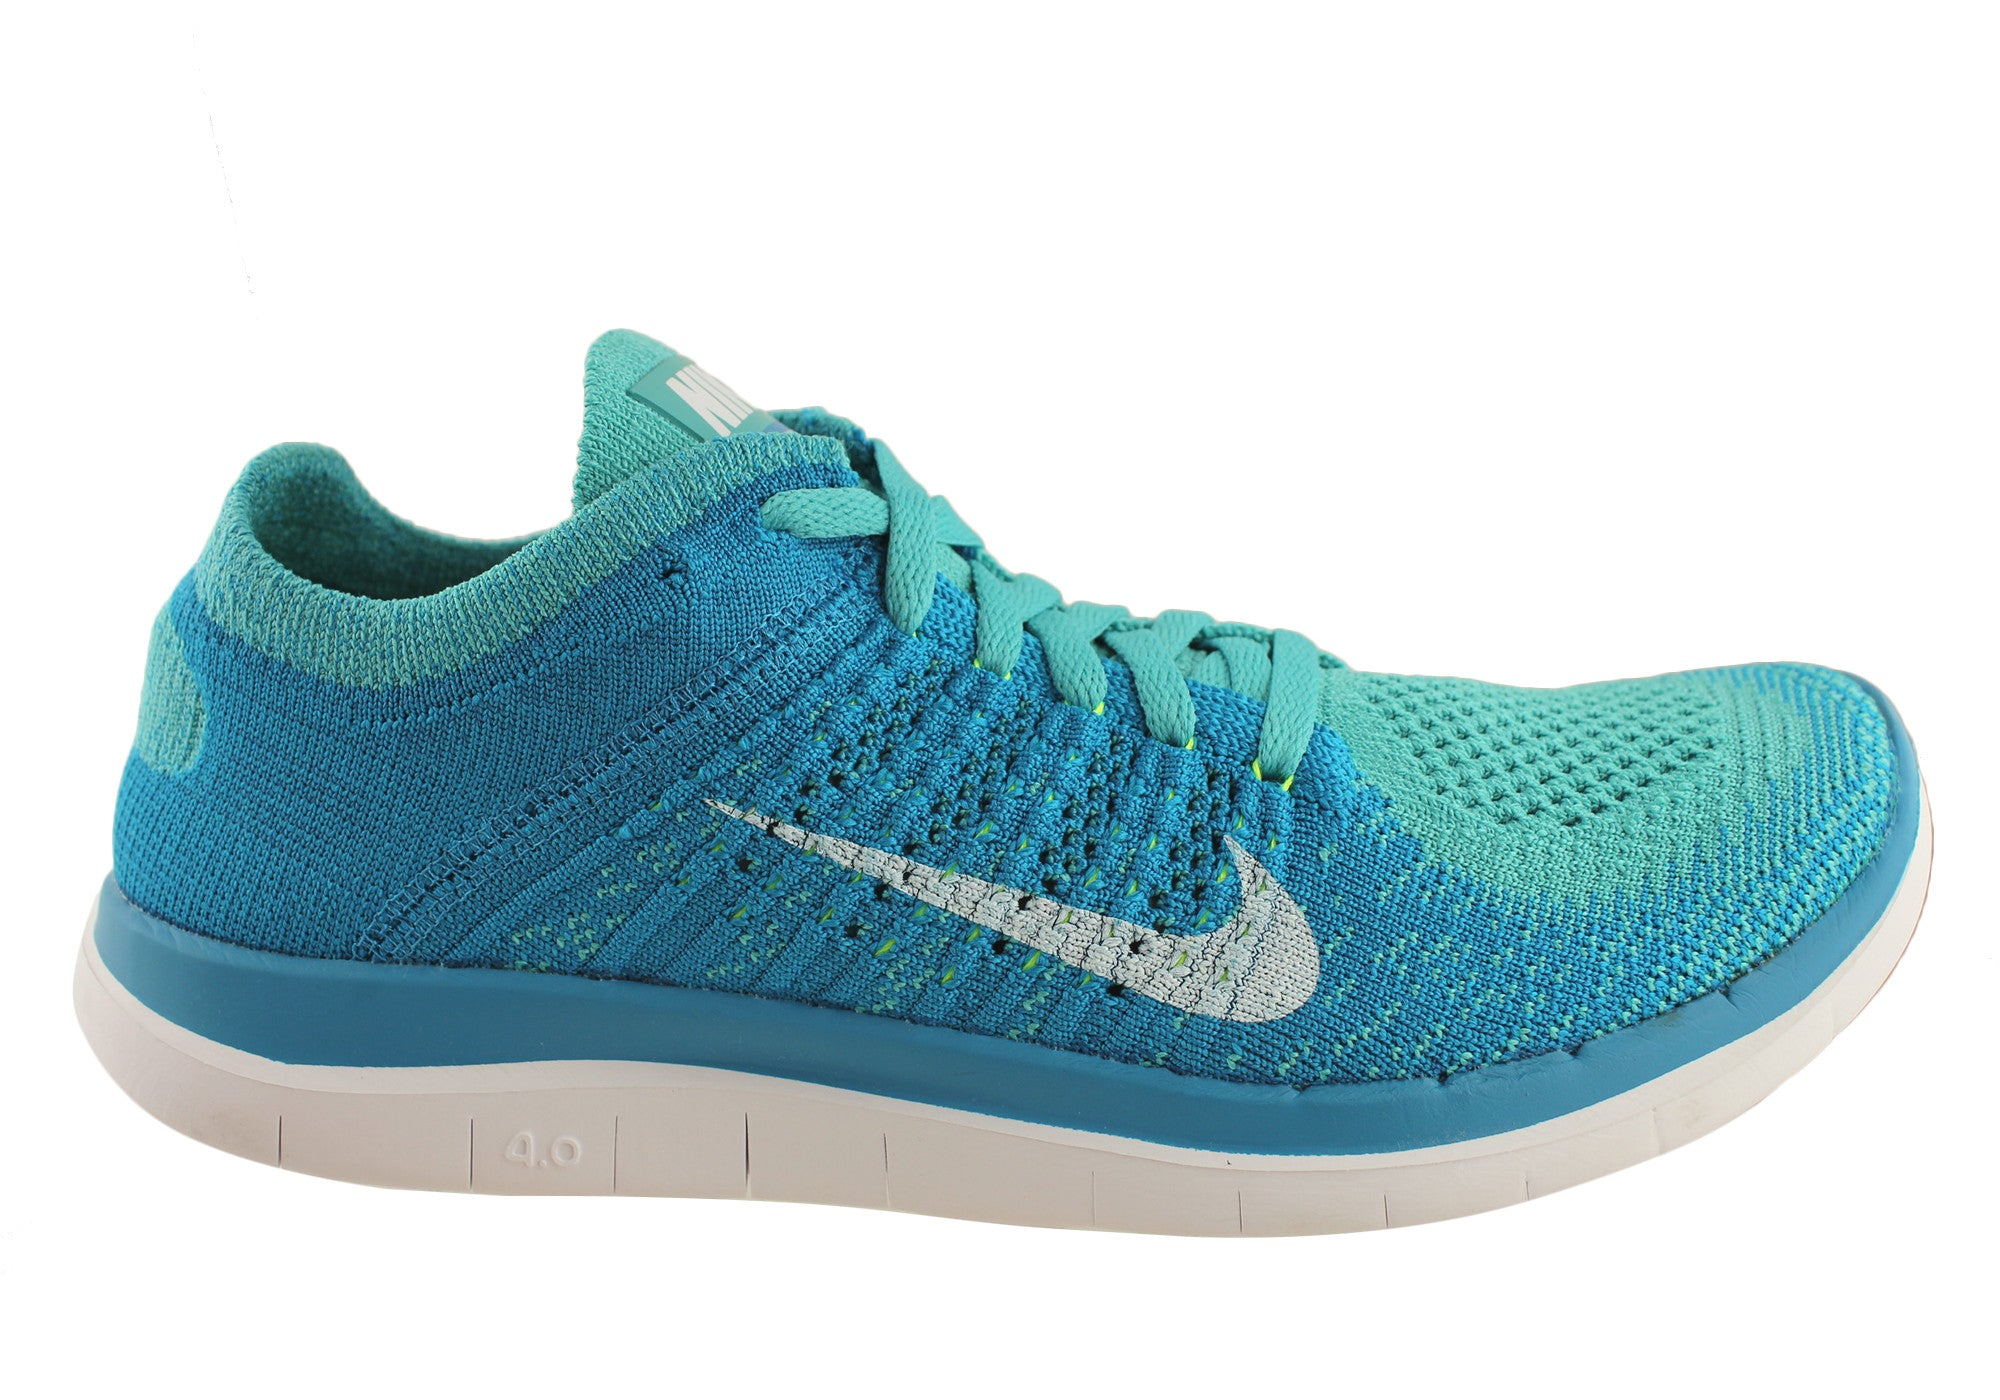 info for 2301b 05885 Home Nike Free Flyknit 4.0 Womens Lightweight Running Shoes. Turquoise  ...